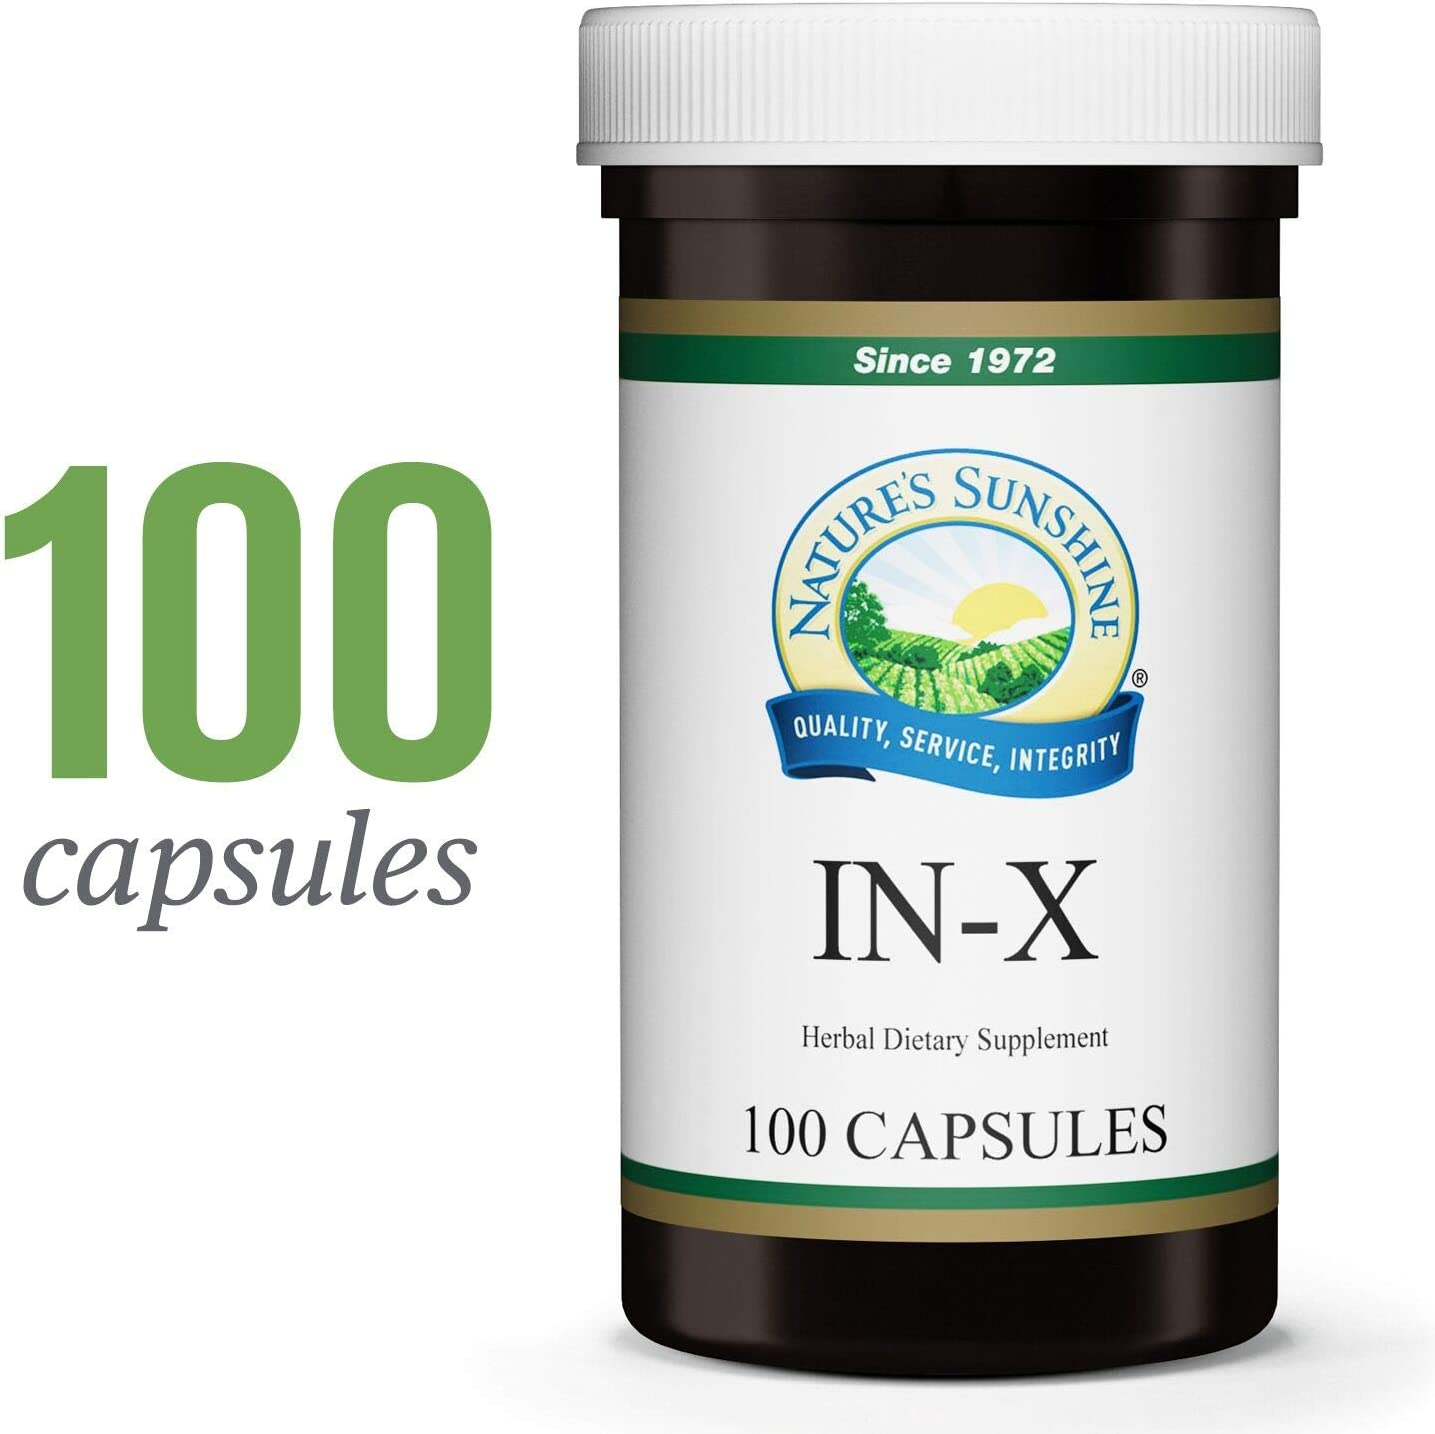 Nature s Sunshine in-X, 100 Capsules Herbal Blend That Supports The Immune System, Supports The Digestive Systems, and Helps Maintain Microbiological Balance